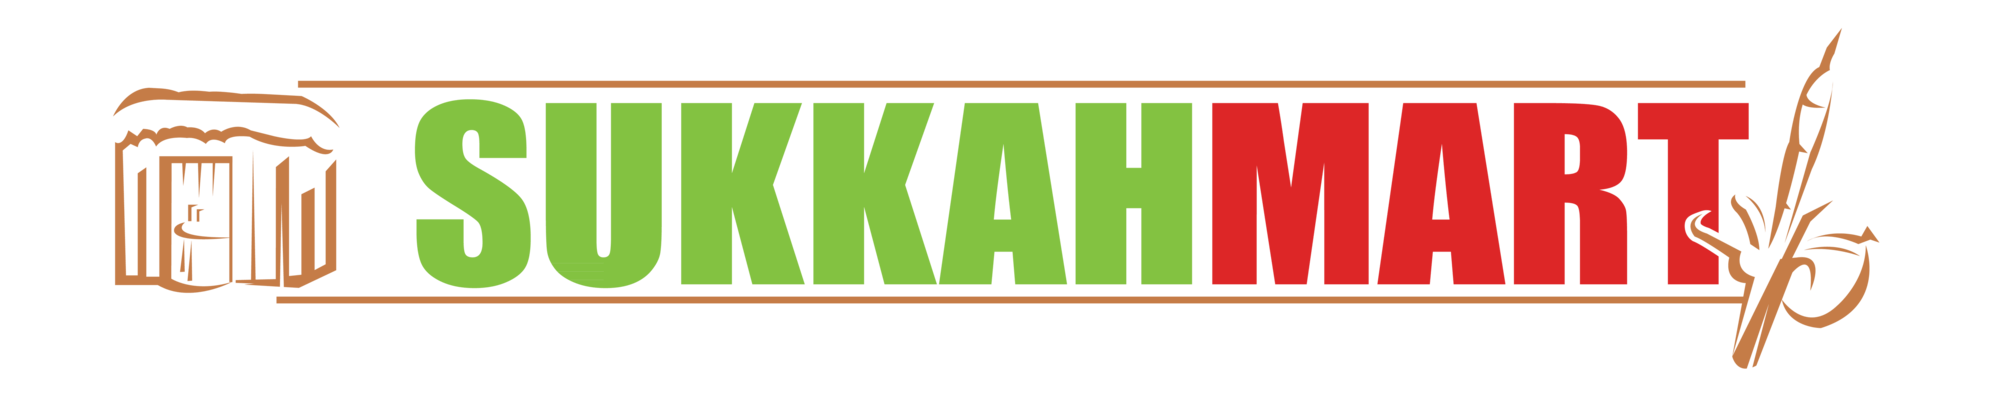 Sukkahmart United Kingdom and Europe logo